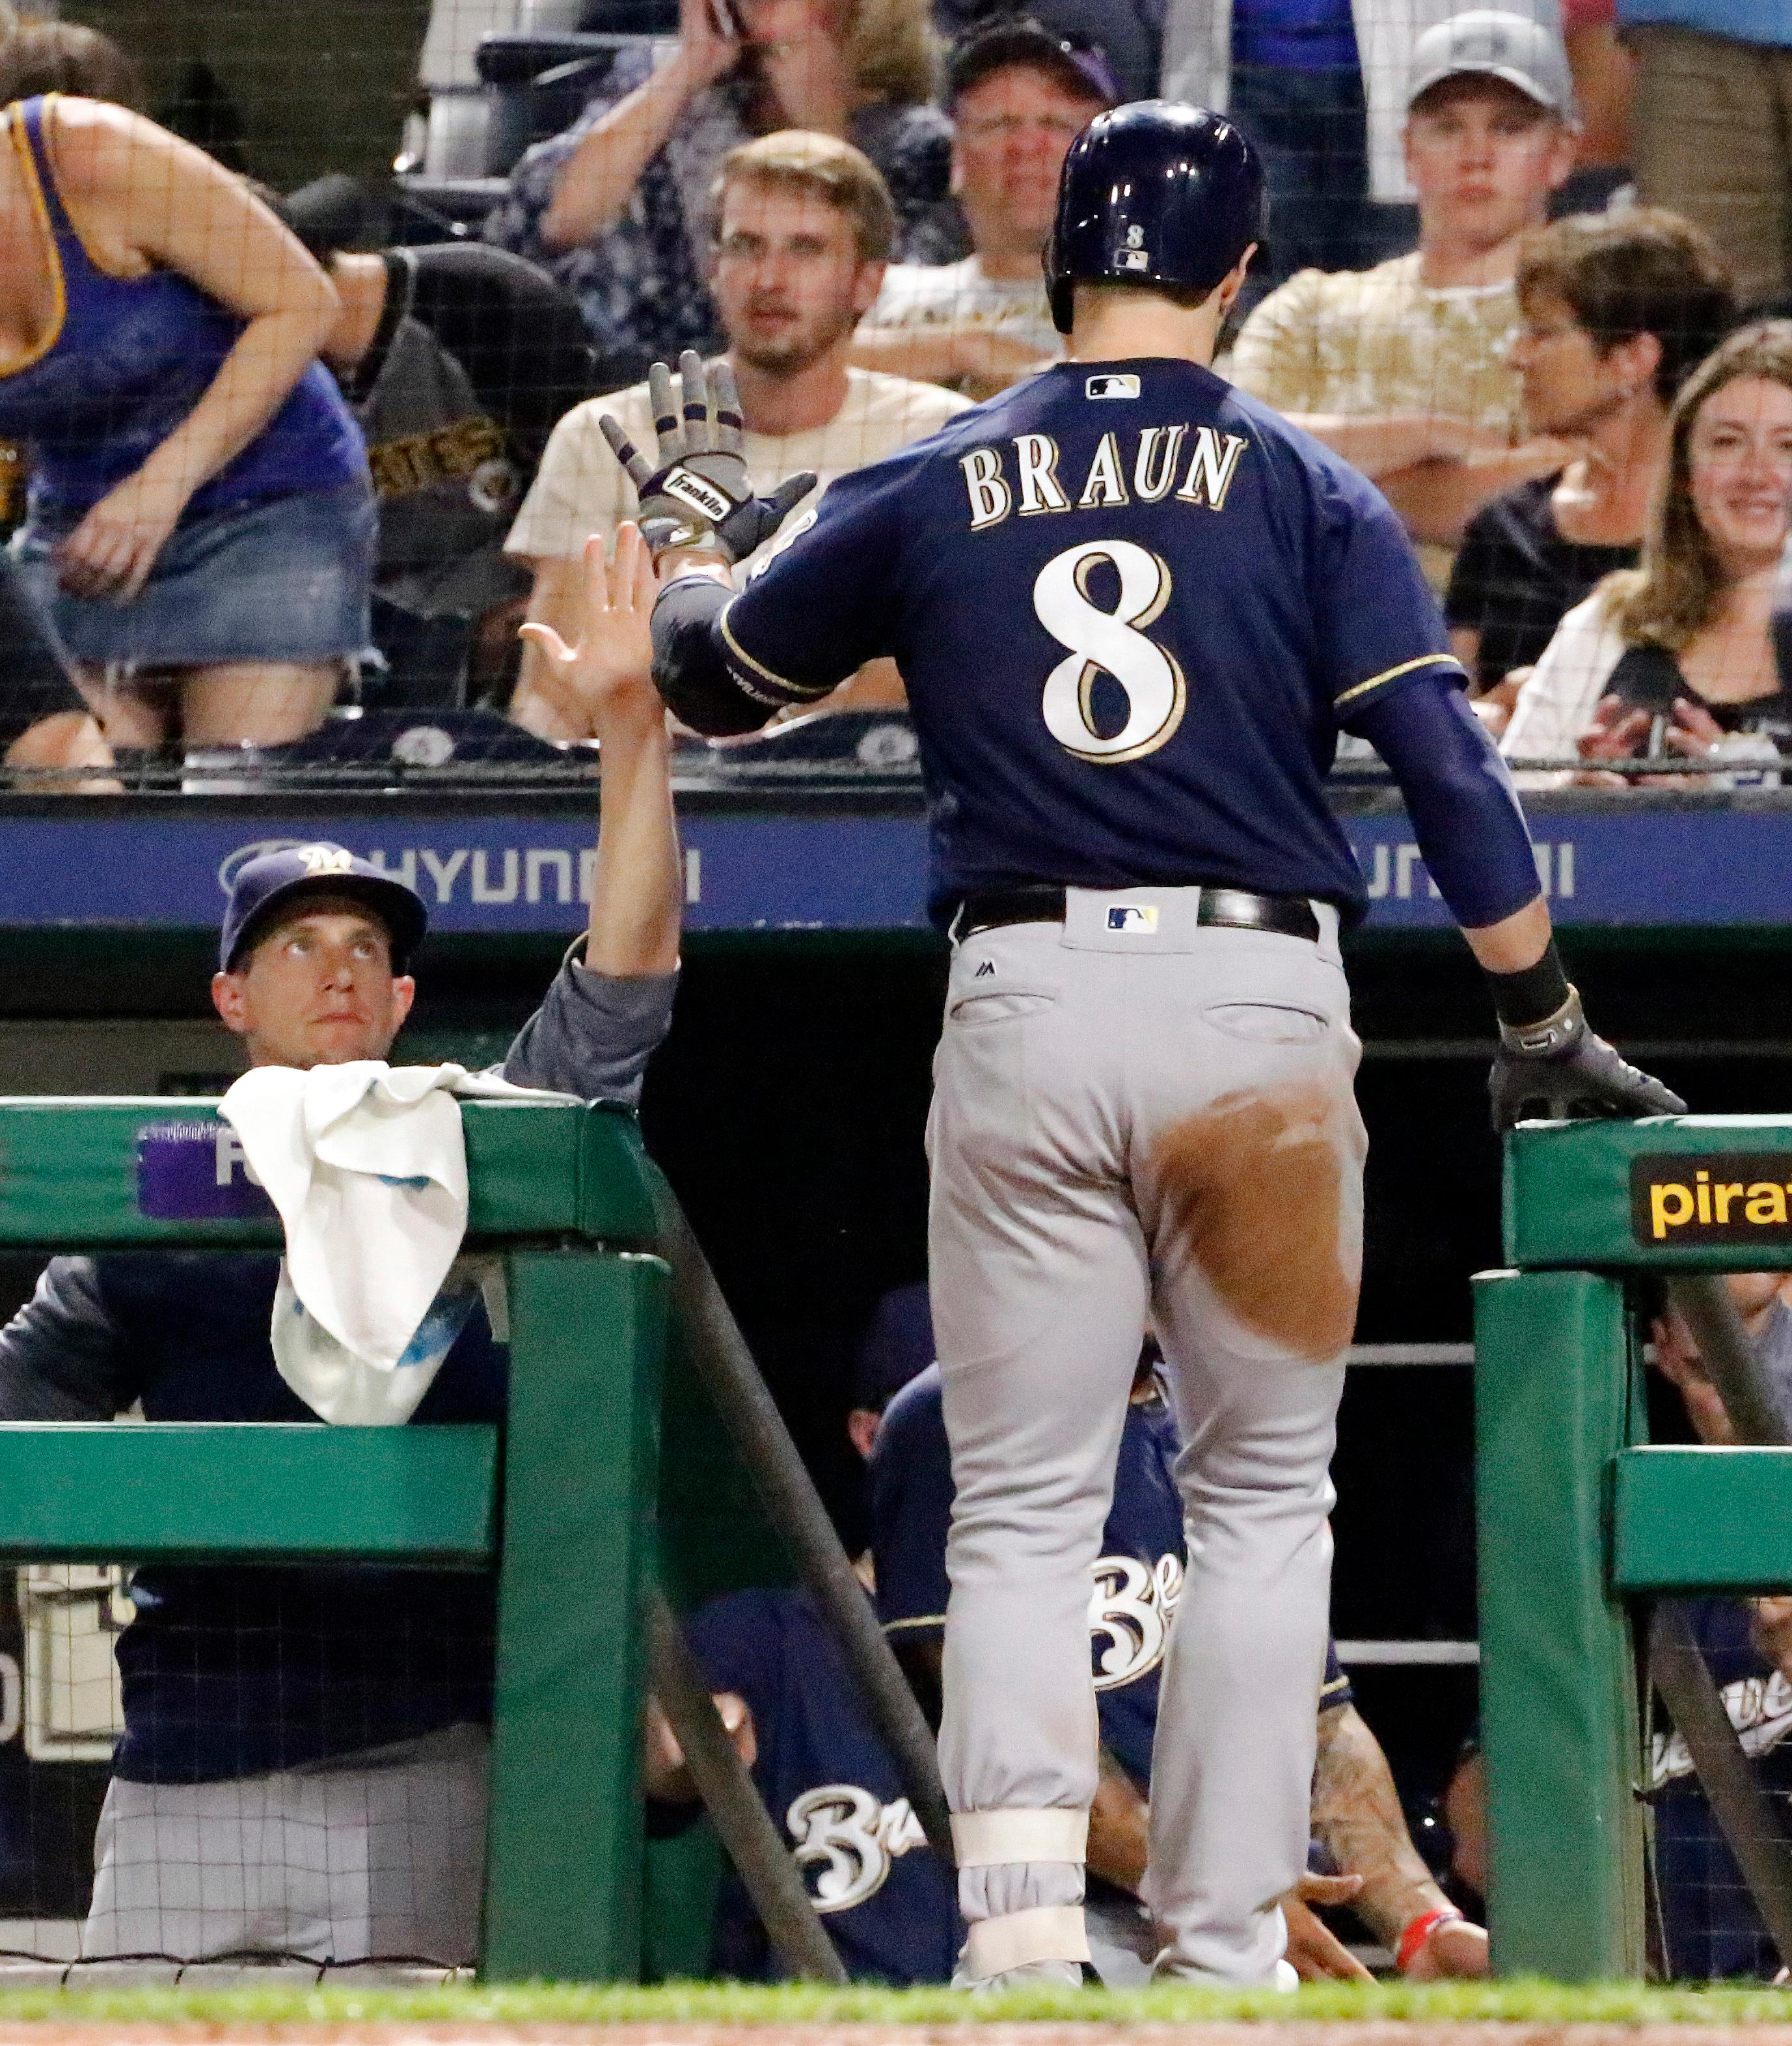 Milwaukee Brewers' Ryan Braun (8) is greeted at the dugout steps by manager Craig Counsell after hitting a solo home run off Pittsburgh Pirates starting pitcher Jameson Taillon in the fourth inning, Monday, Sept. 18, 2017 in Pittsburgh. (AP Photo/Gene J. Puskar)